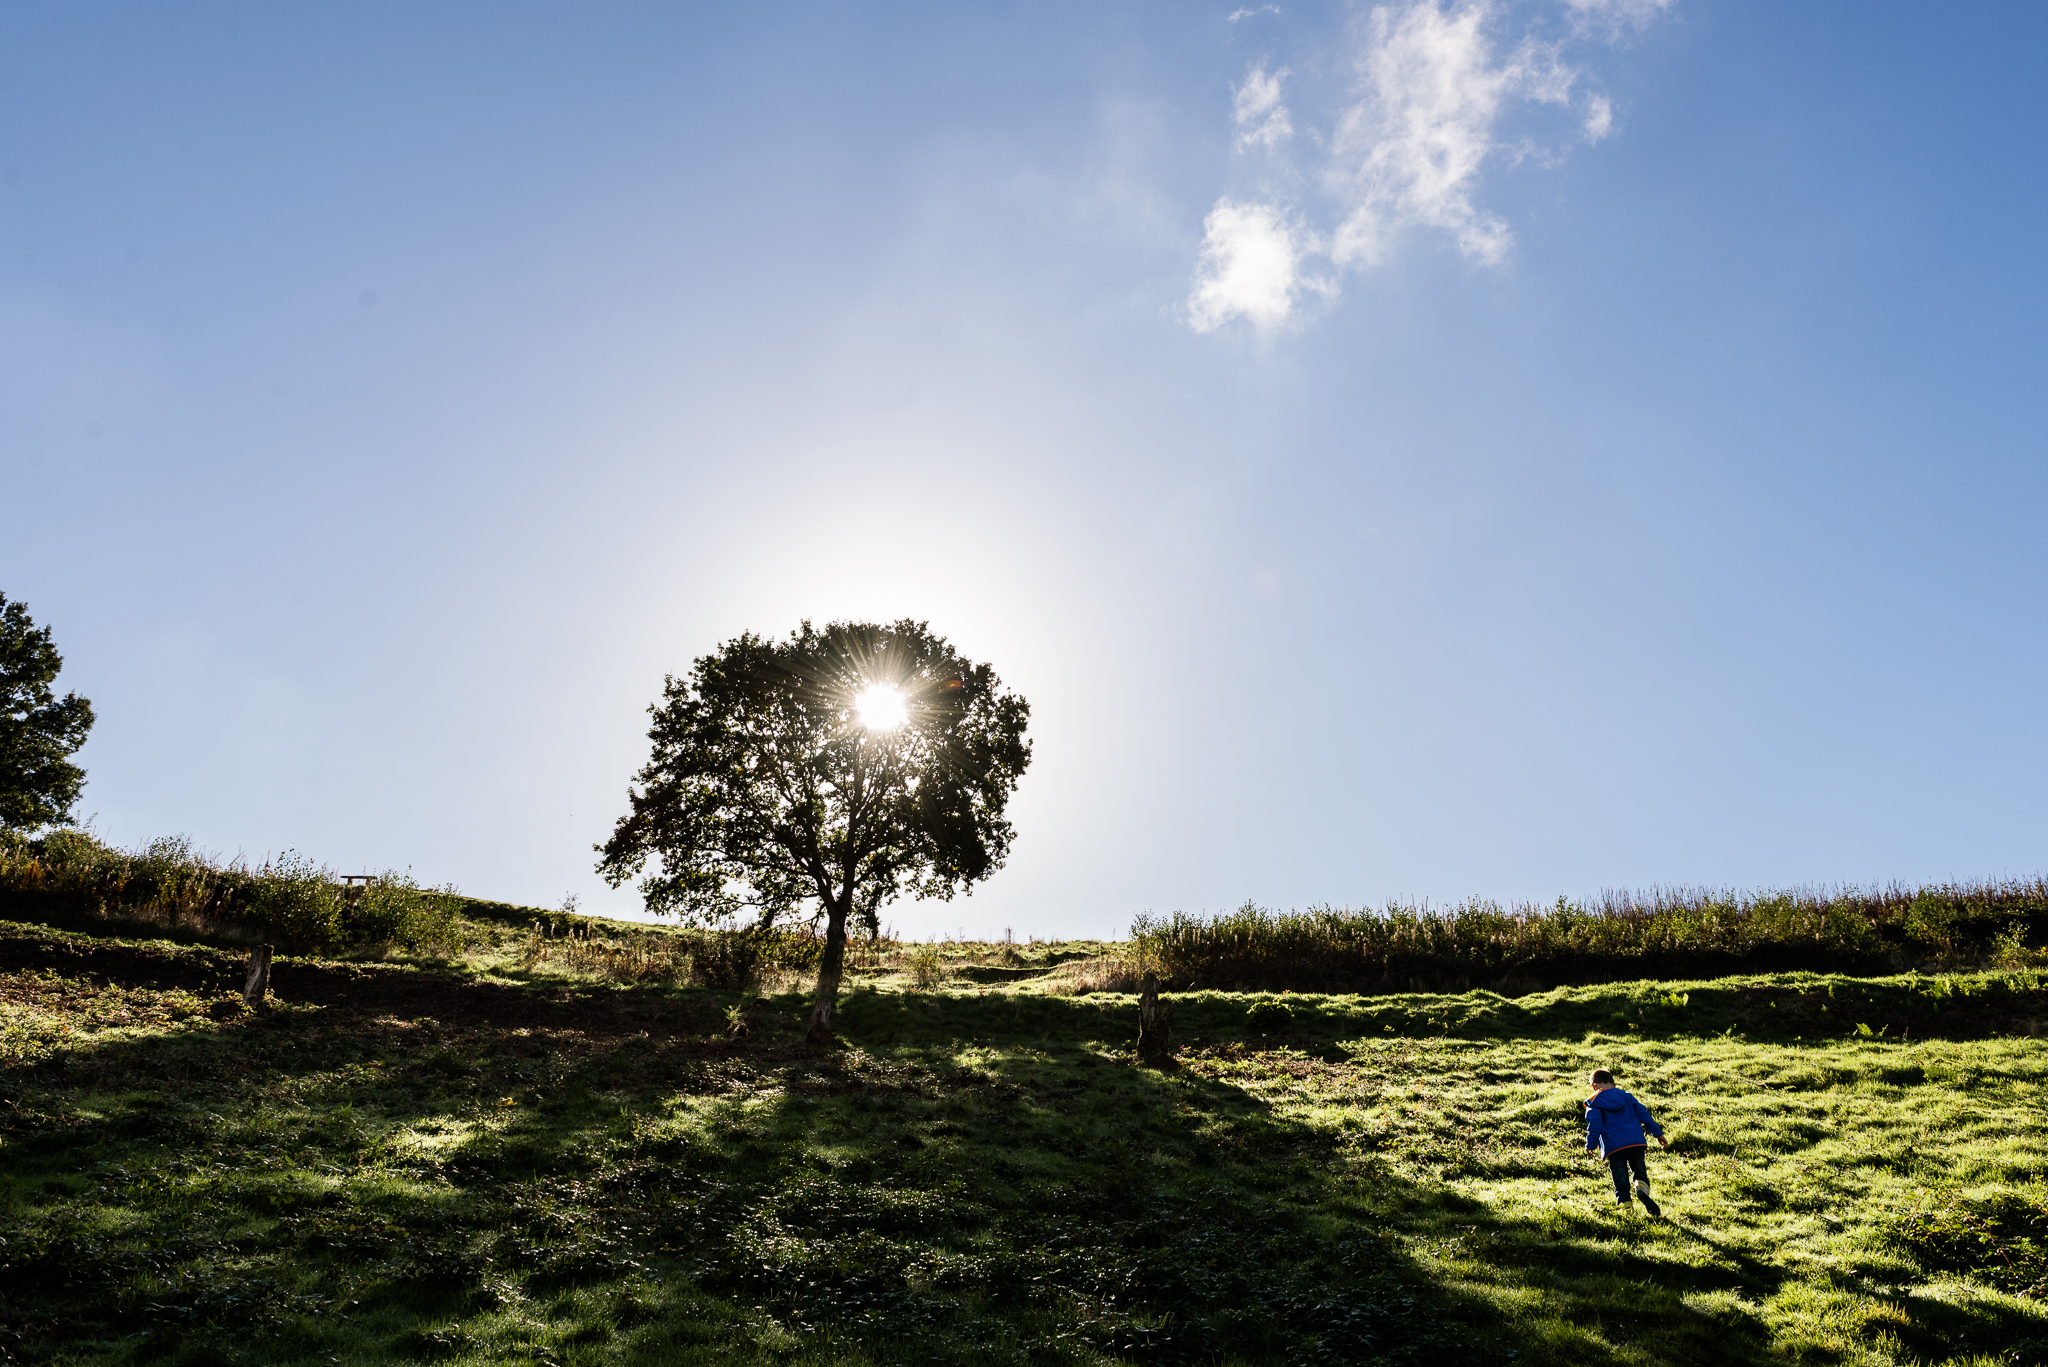 Documentary Family Photography at Clent Hills, Worcestershire Family Lifestyle Photography Woods Outdoors Trees Flying Kite - Jenny Harper-7.jpg